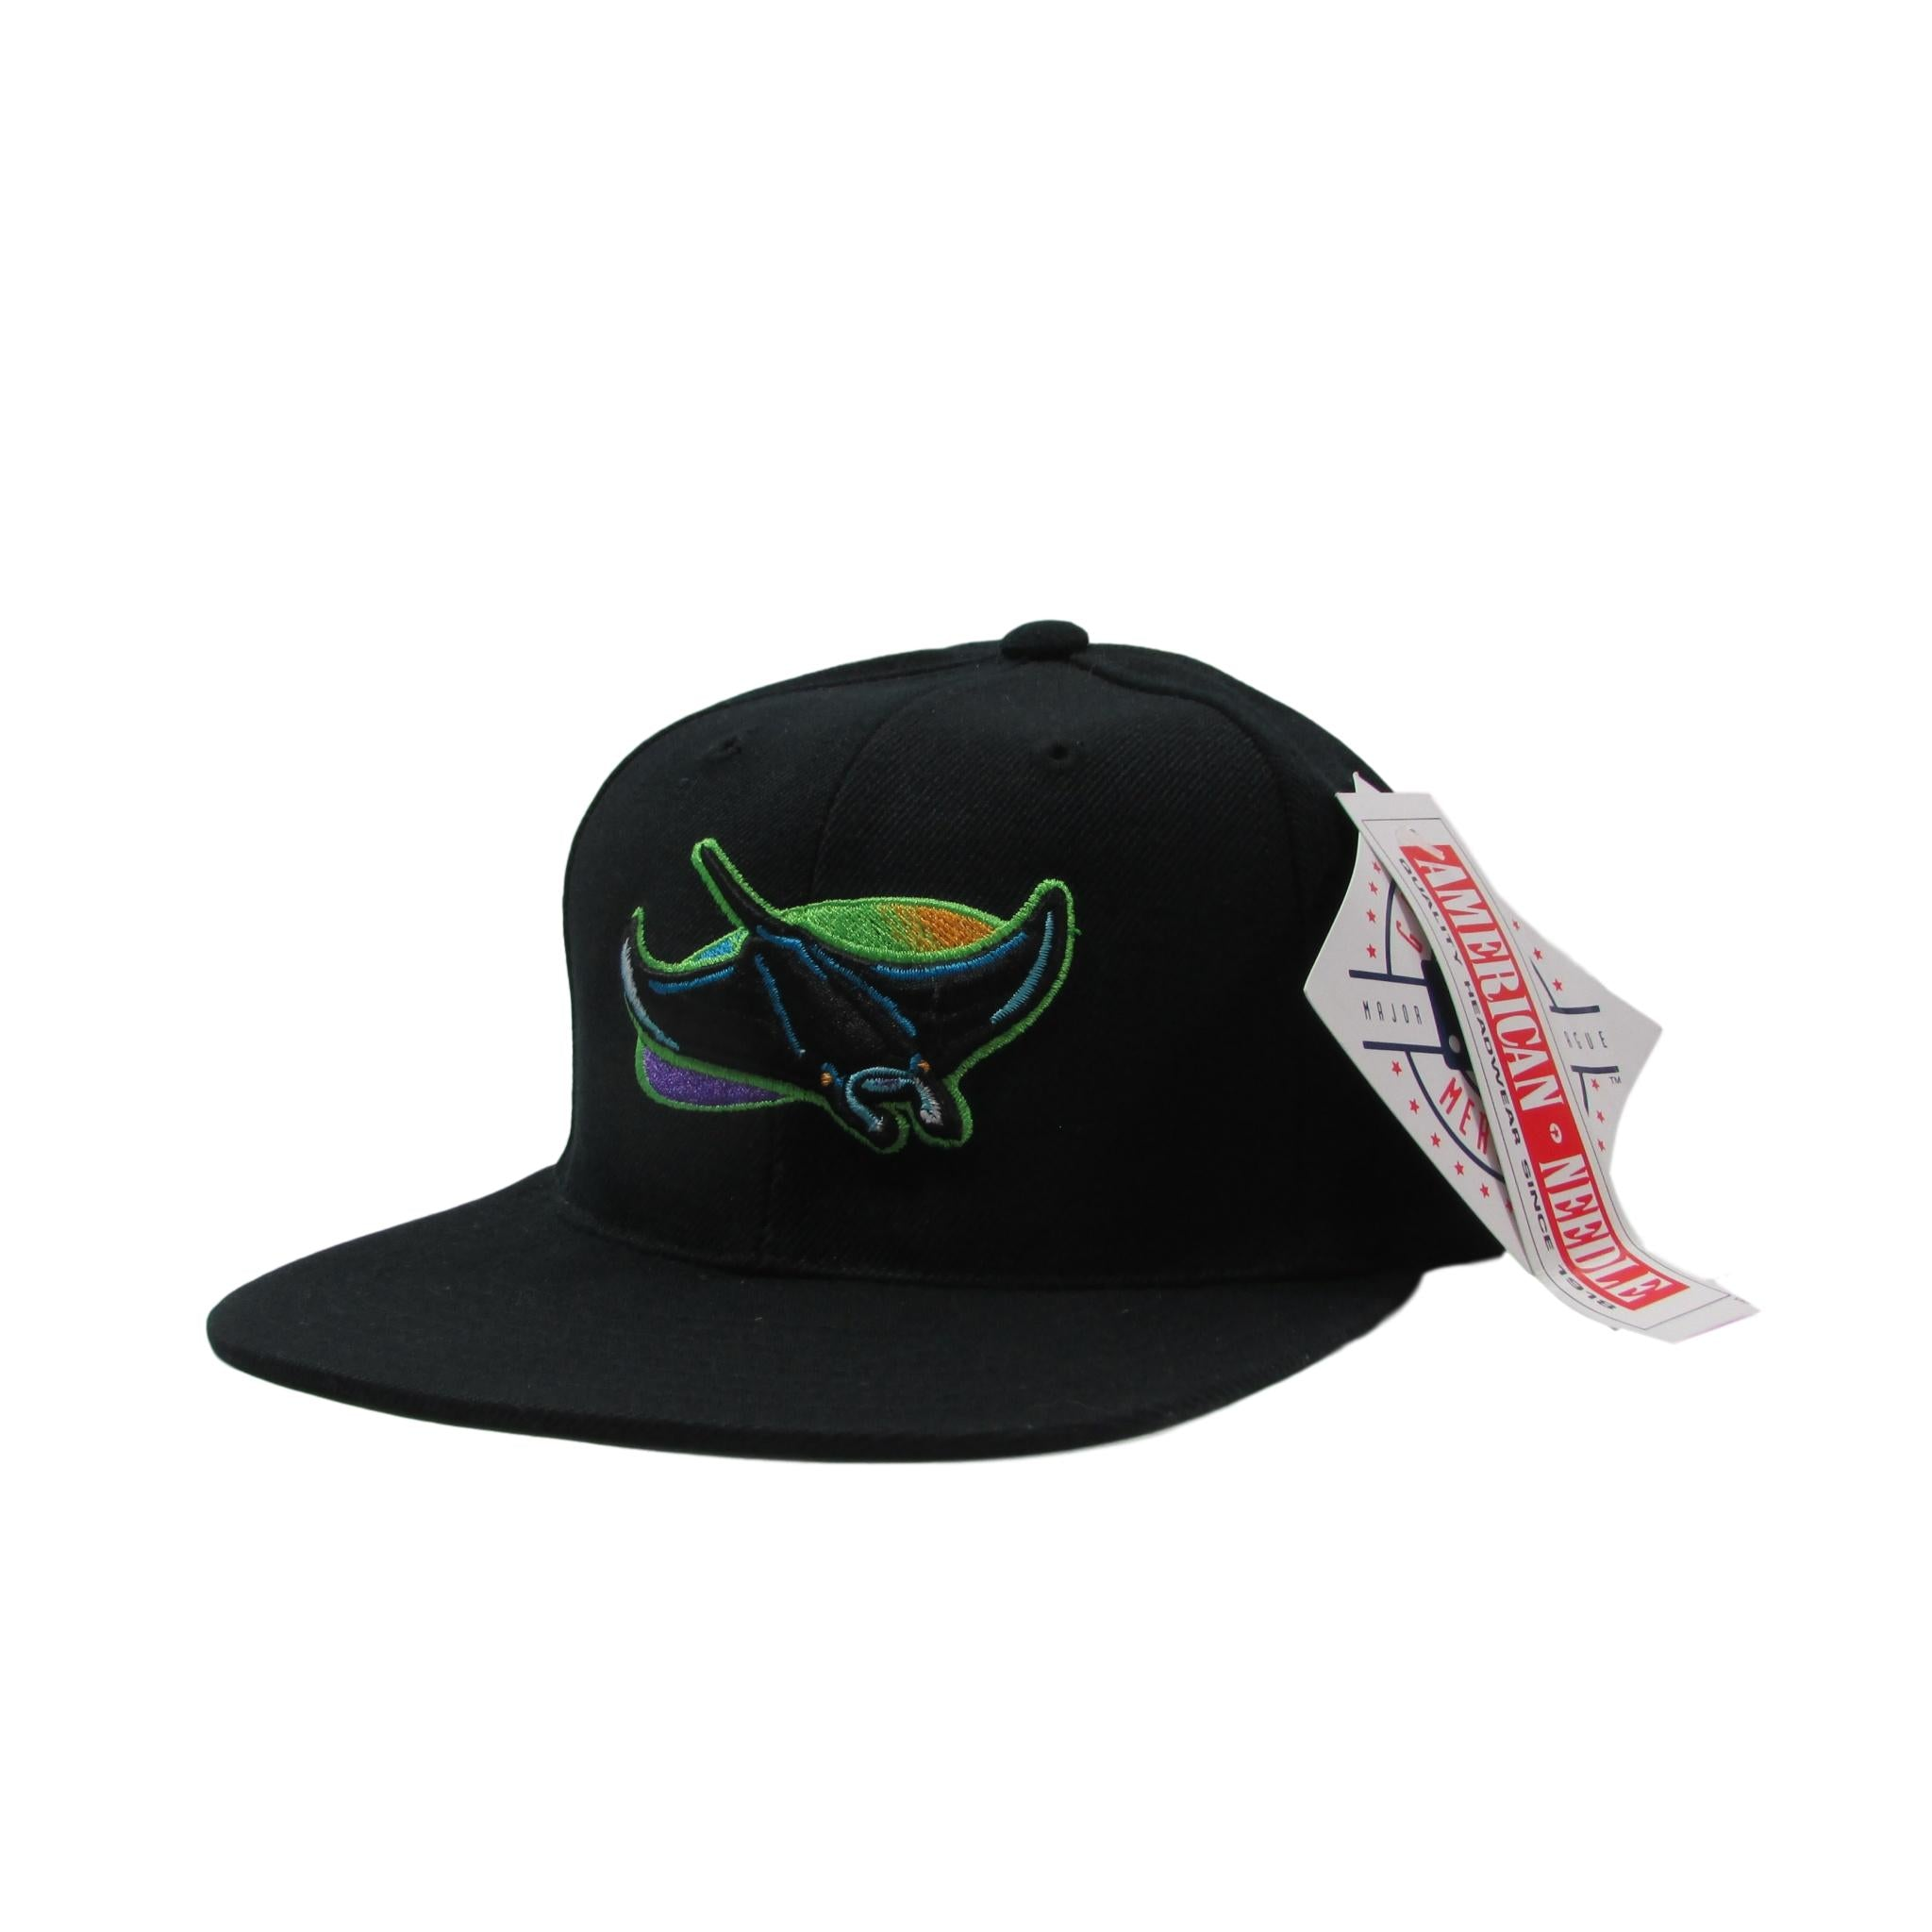 Tampa Bay Devil Rays Deadstock 1998 Baseball Snapback Hat AMERICAN NEEDLE